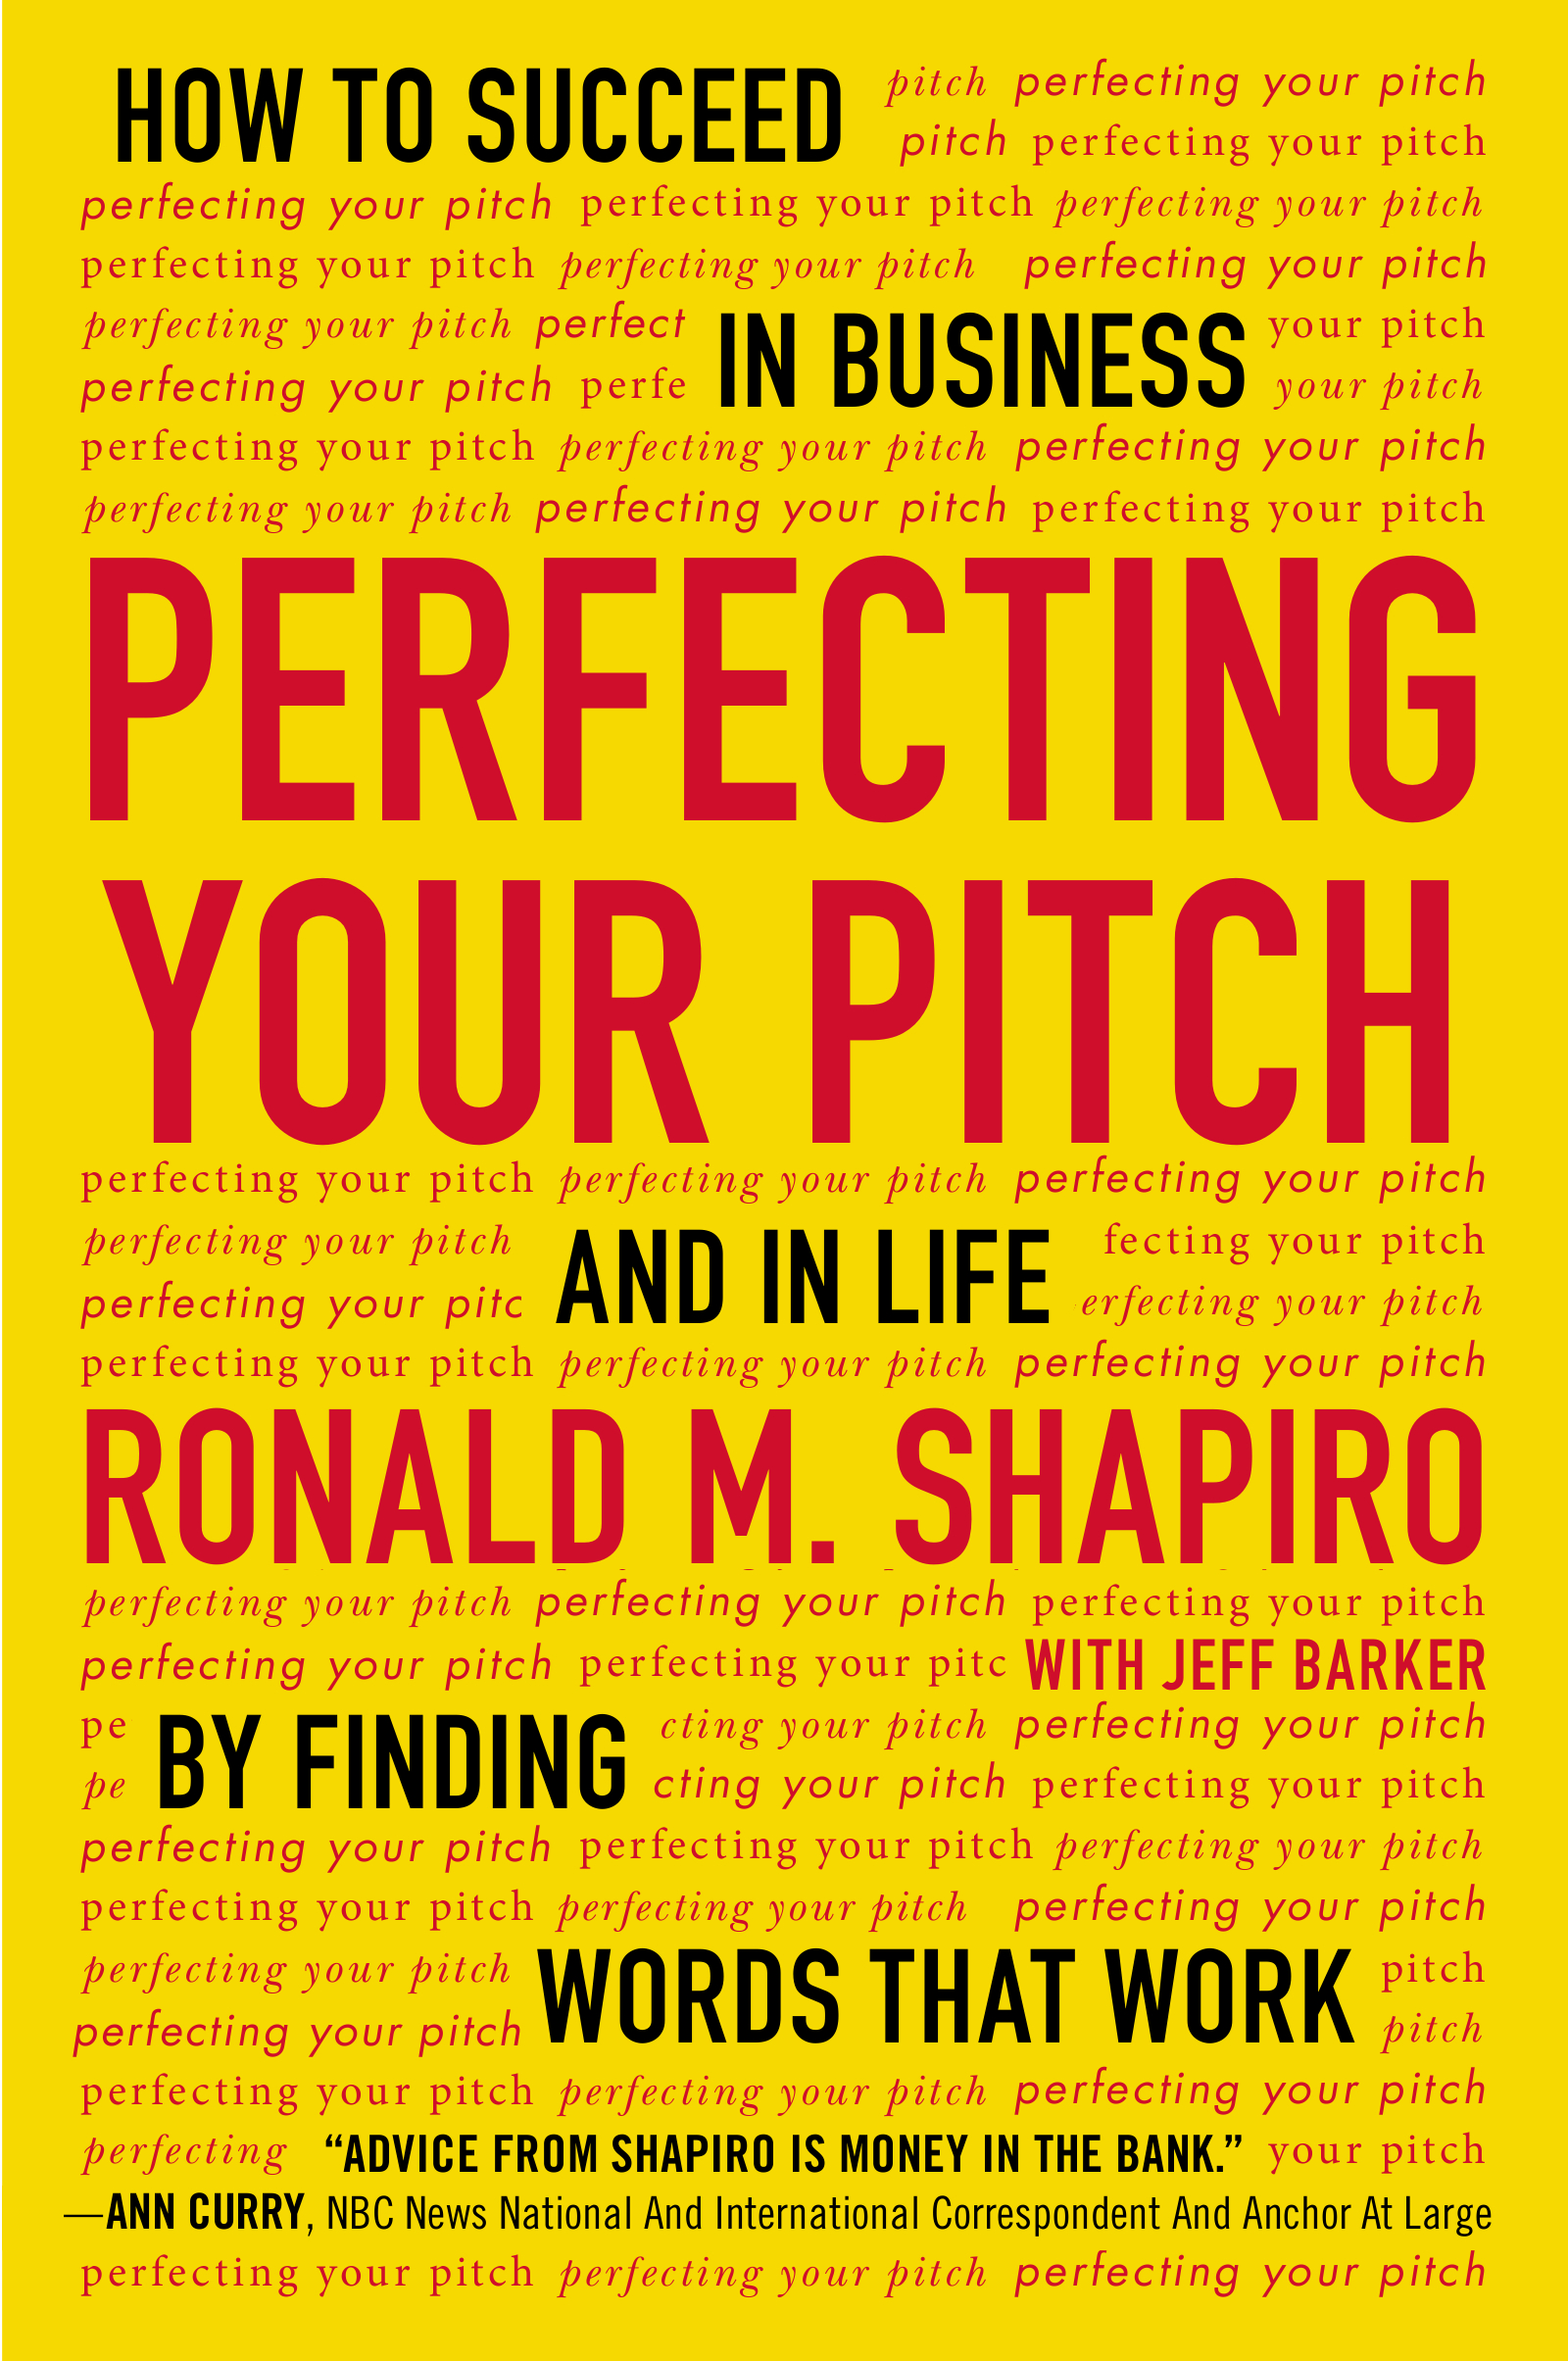 Download Ebook Perfecting Your Pitch by Ronald M. Shapiro Pdf